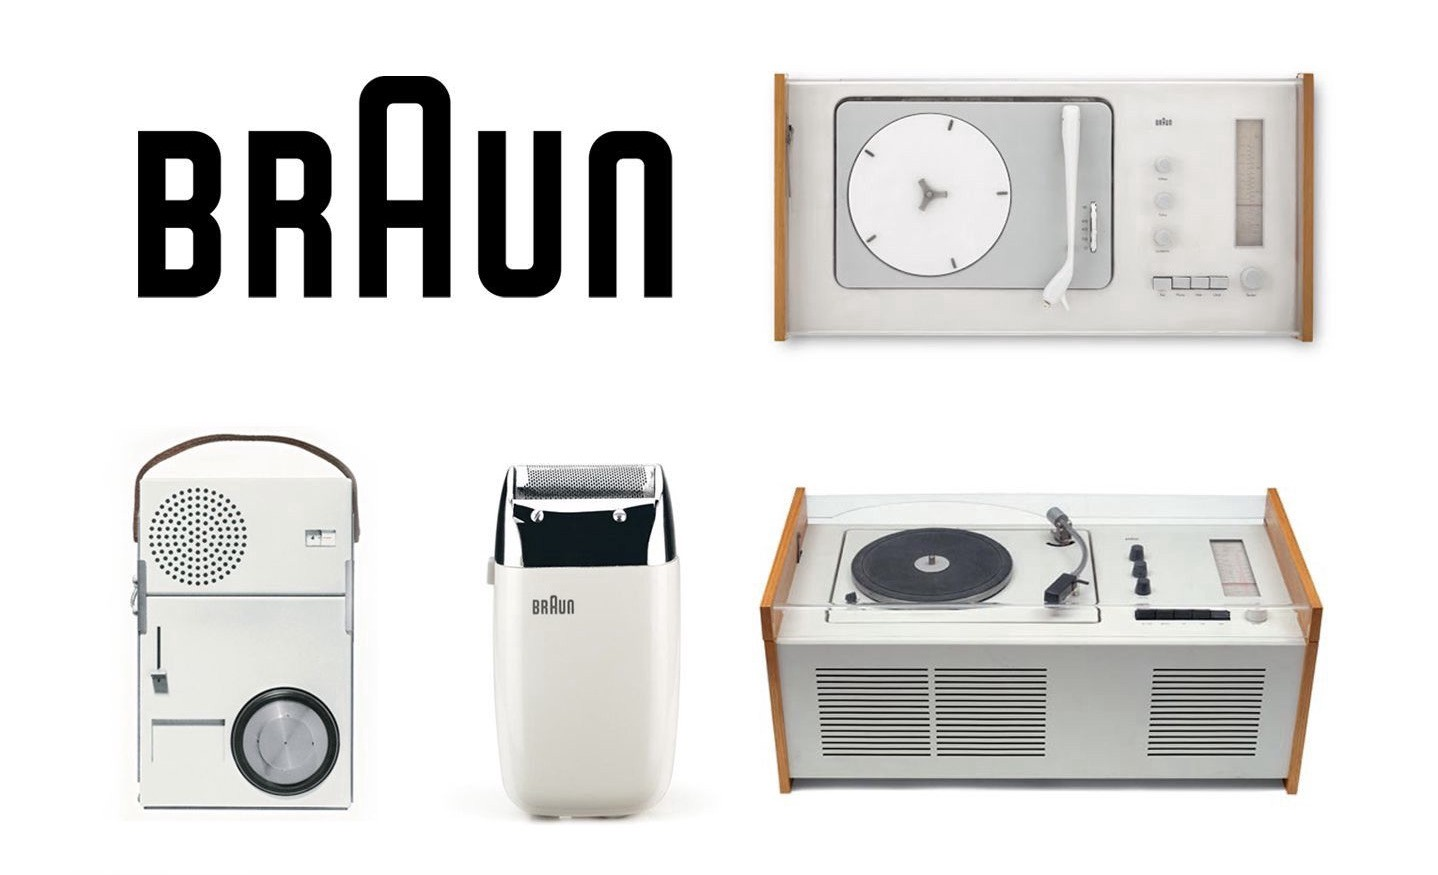 Braun Products Designed by Dieter Rams